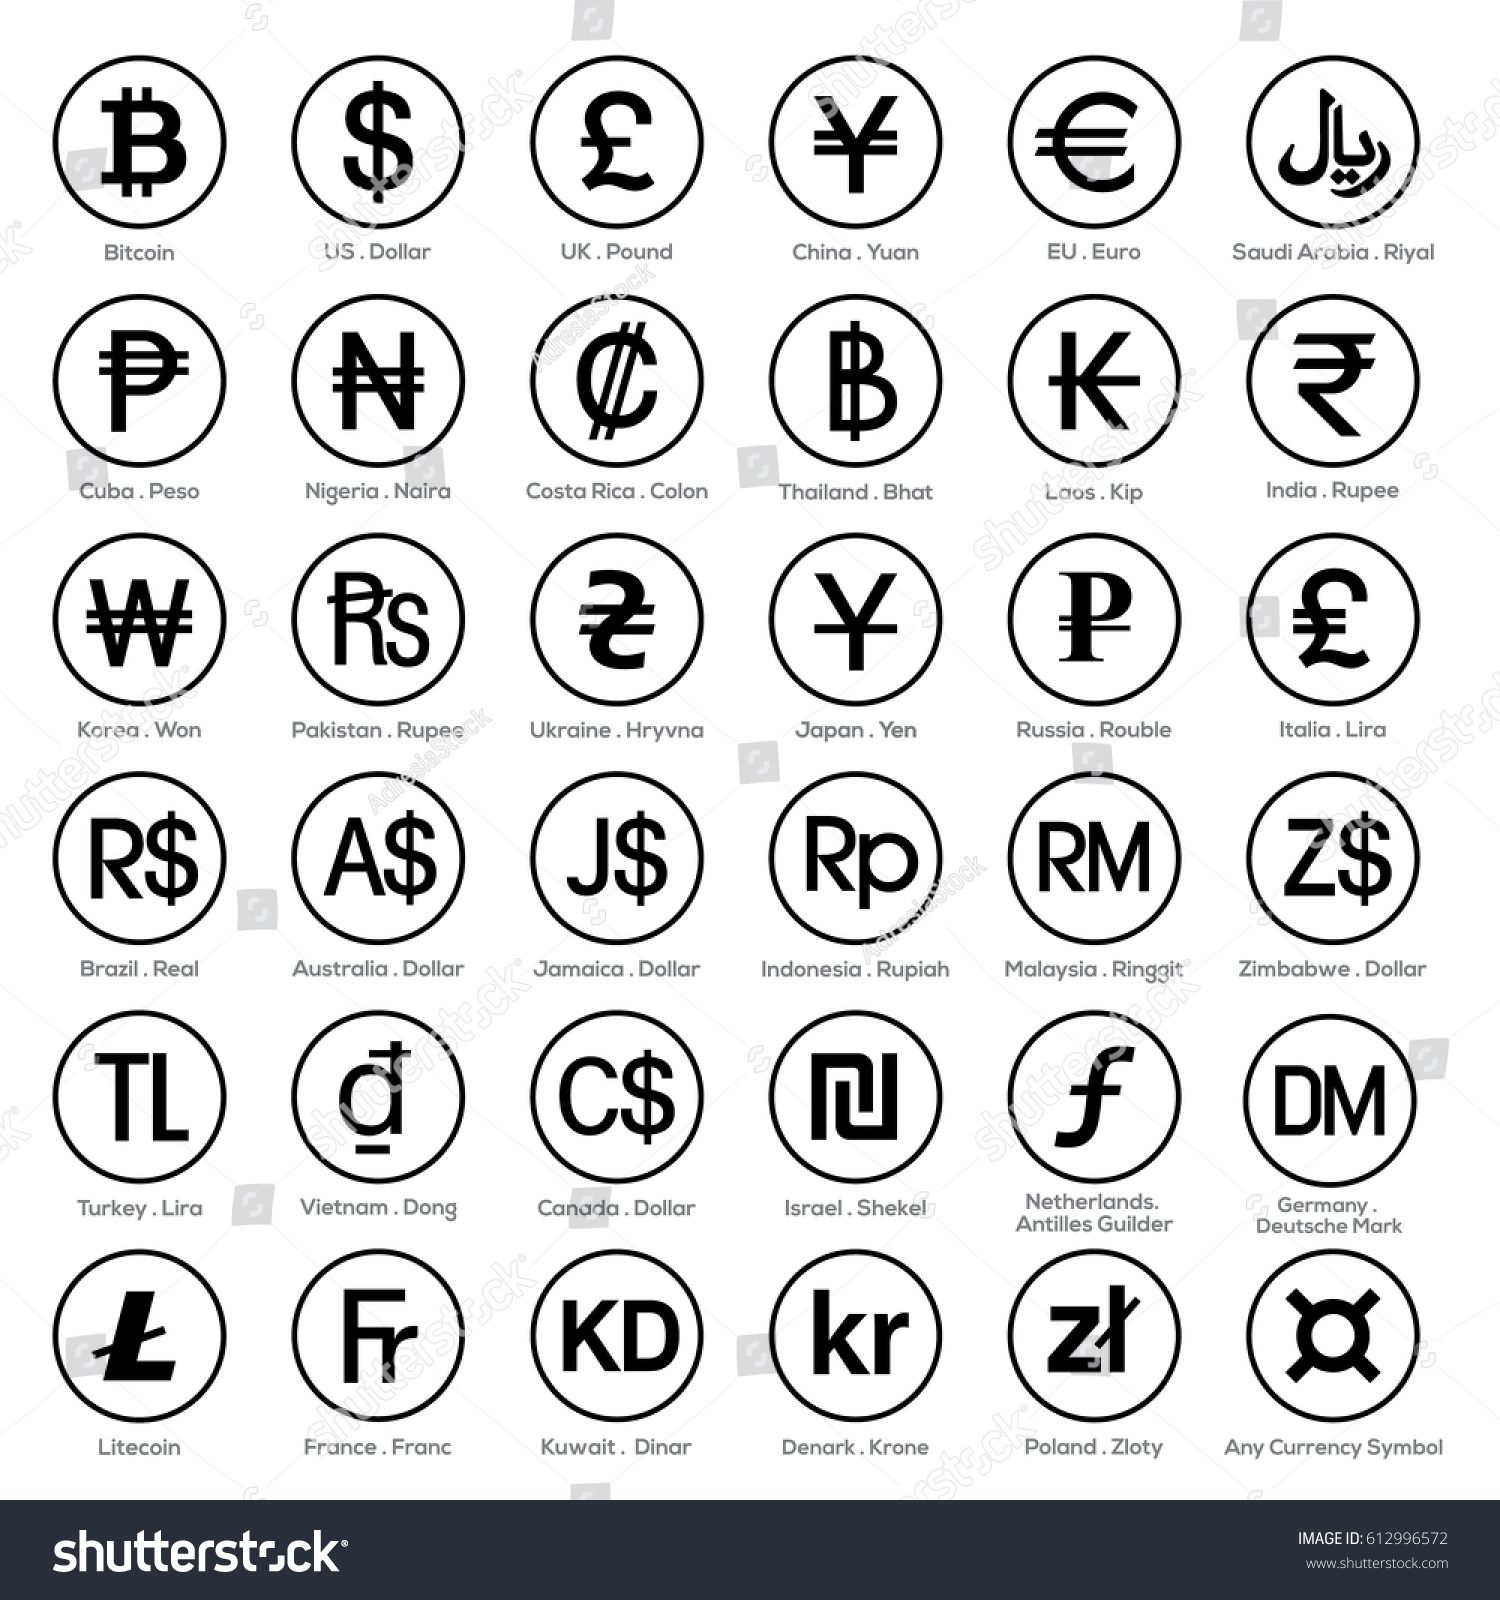 Currency Symbol Icon Sets Stock Vector 612996572 Shutterstock